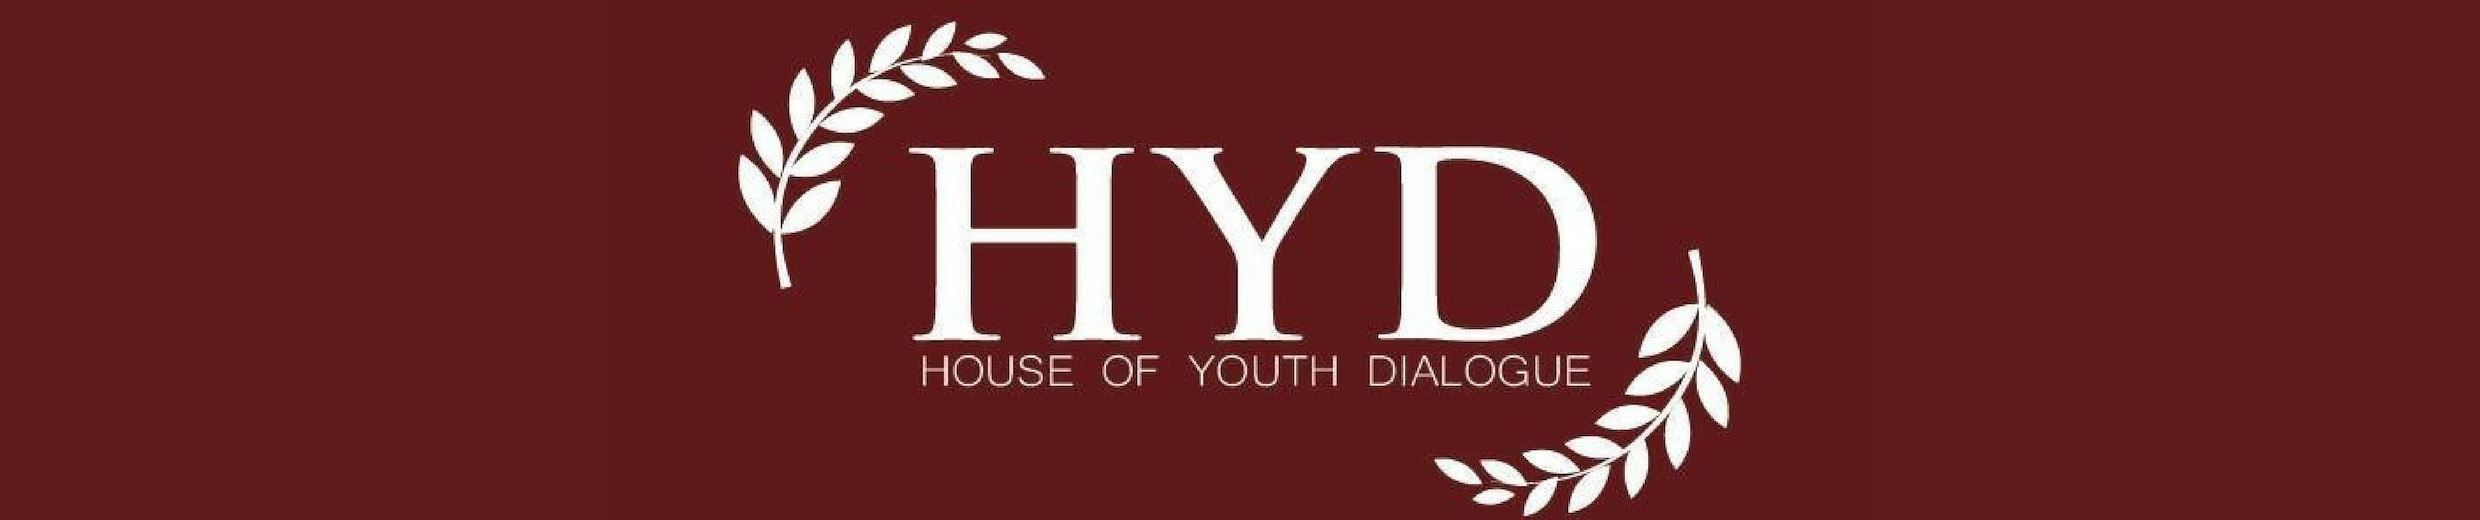 House of Youth Dialogue - HYD (@hydglobal) Cover Image